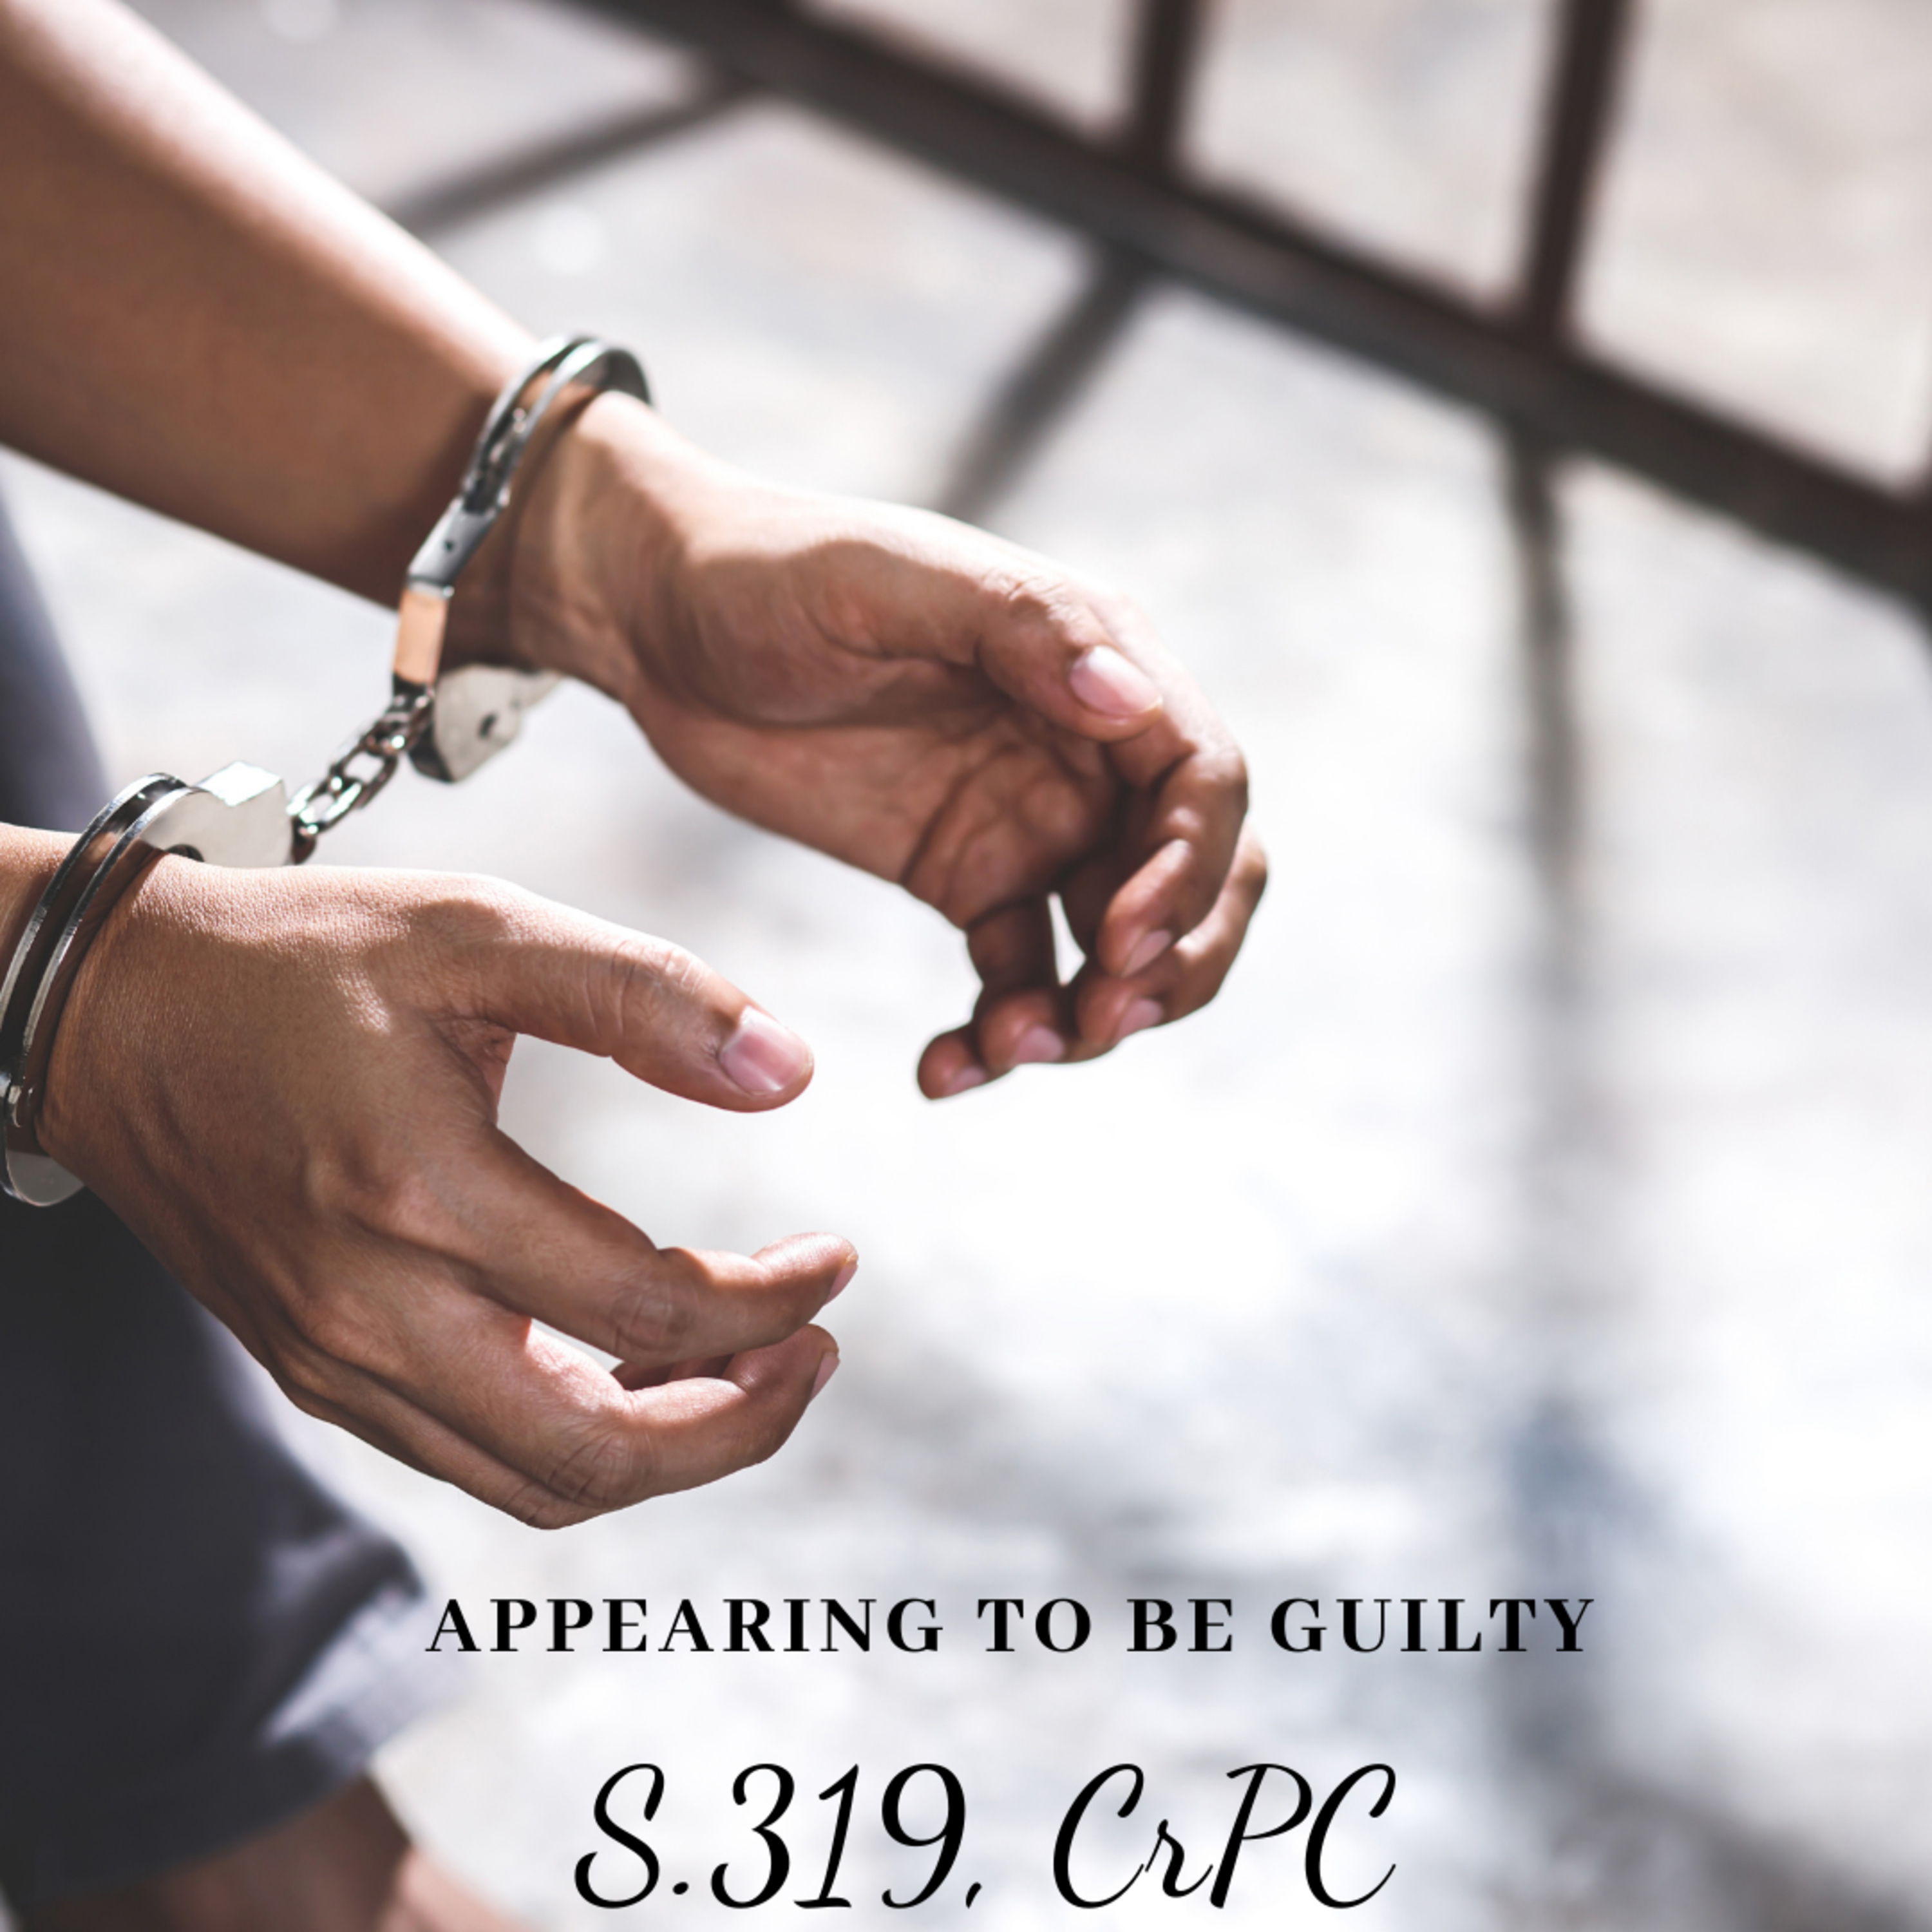 Appearing to be Guilty